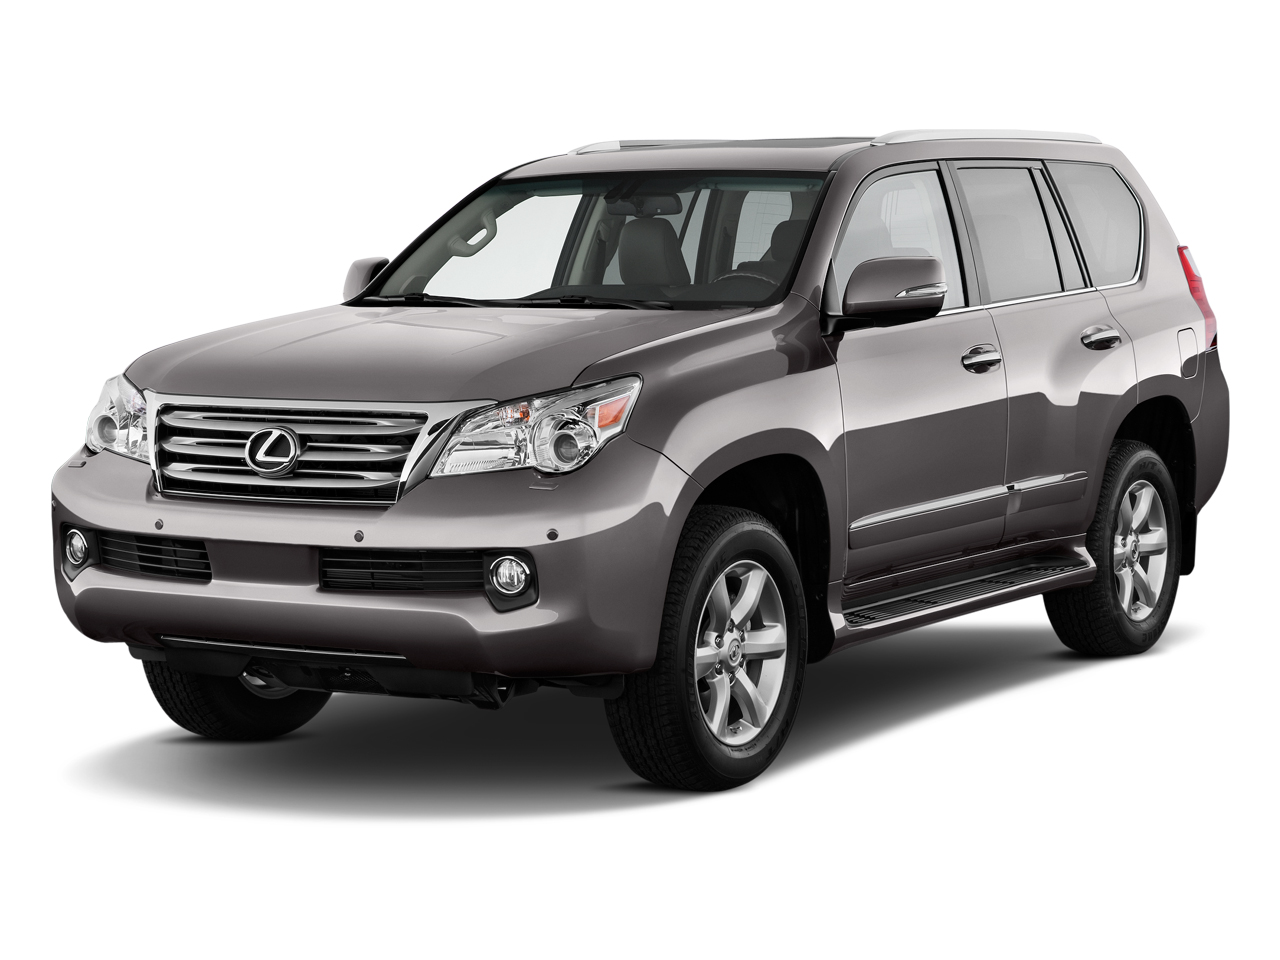 2012 Lexus Gx 460 Review Ratings Specs Prices And